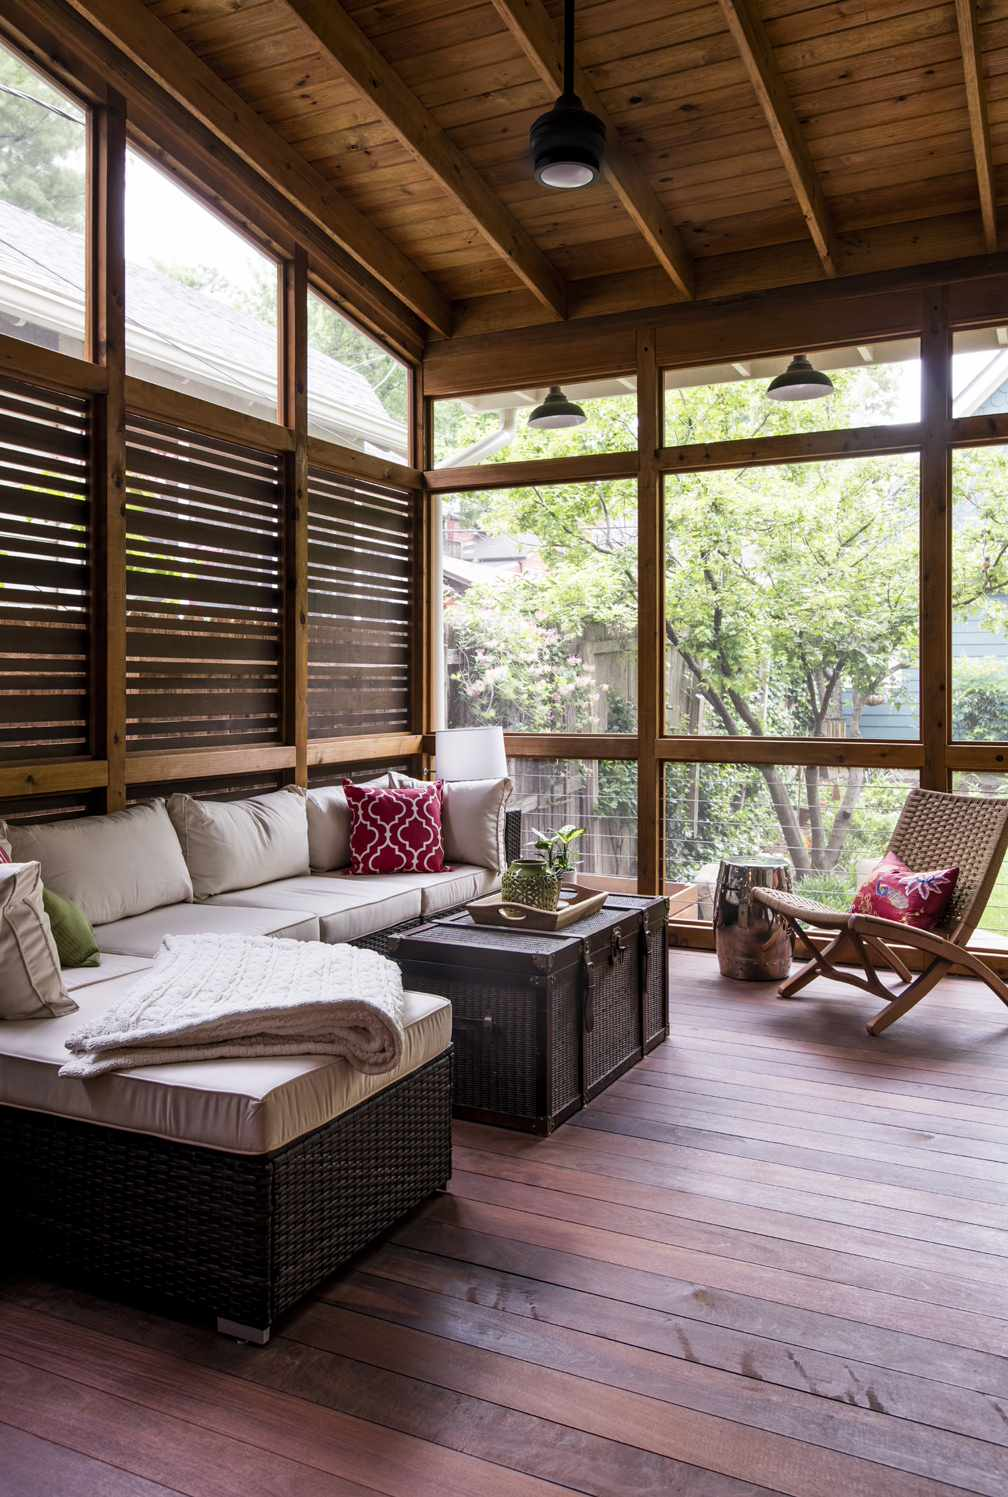 Image of: 75 Beautiful Small Screened In Porch Pictures Ideas November 2020 Houzz